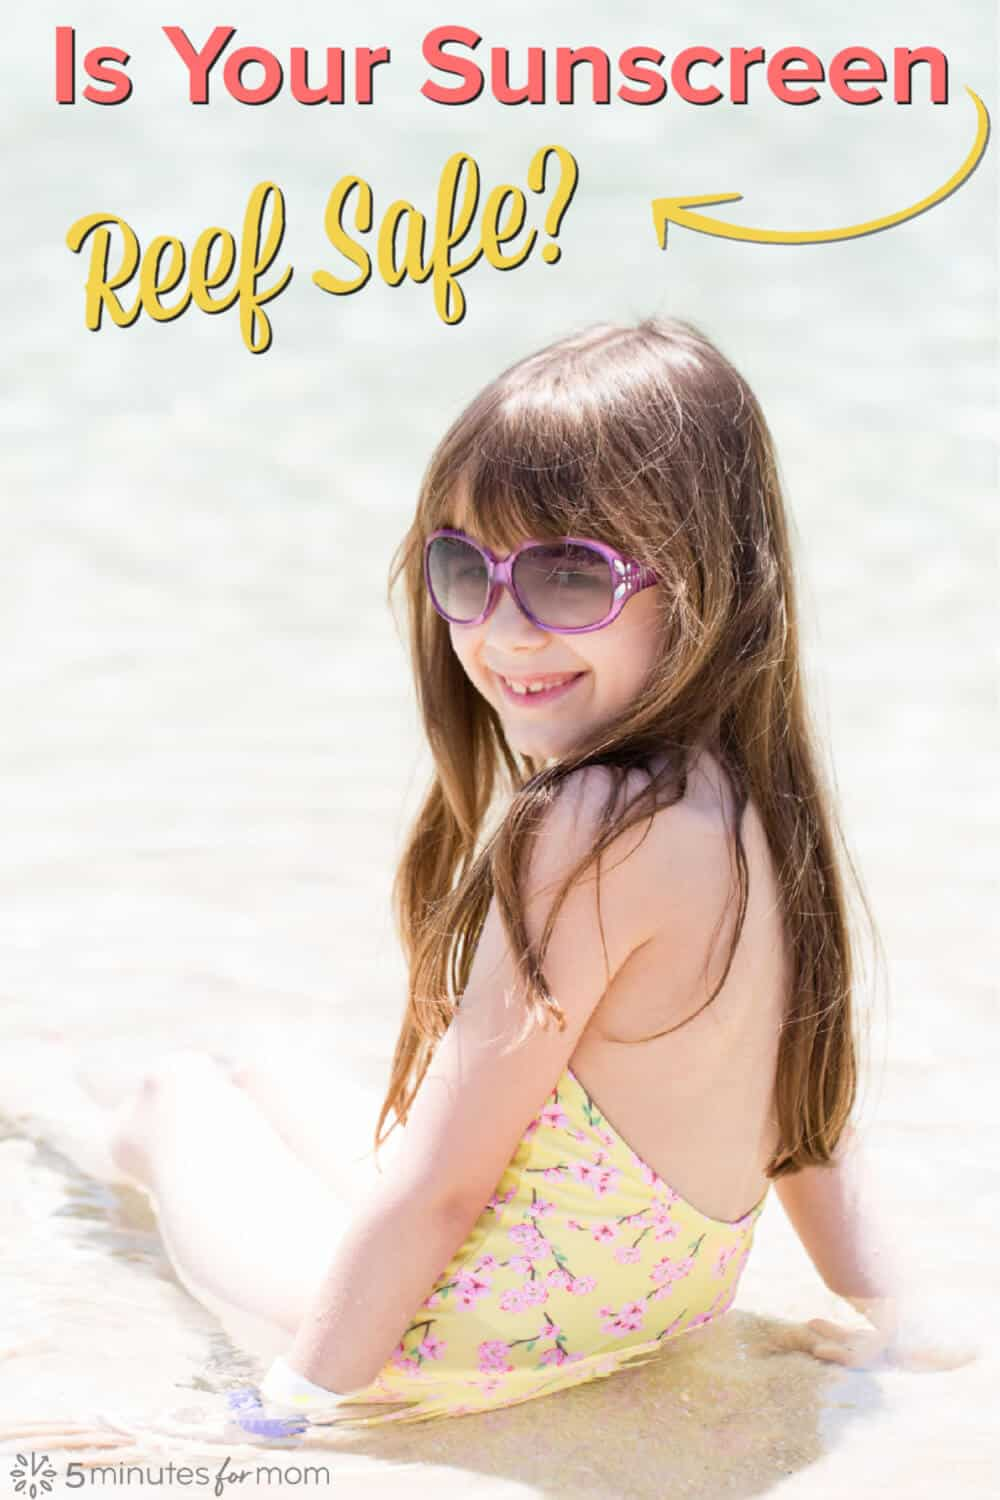 Is Your Sunscreen Reef Safe